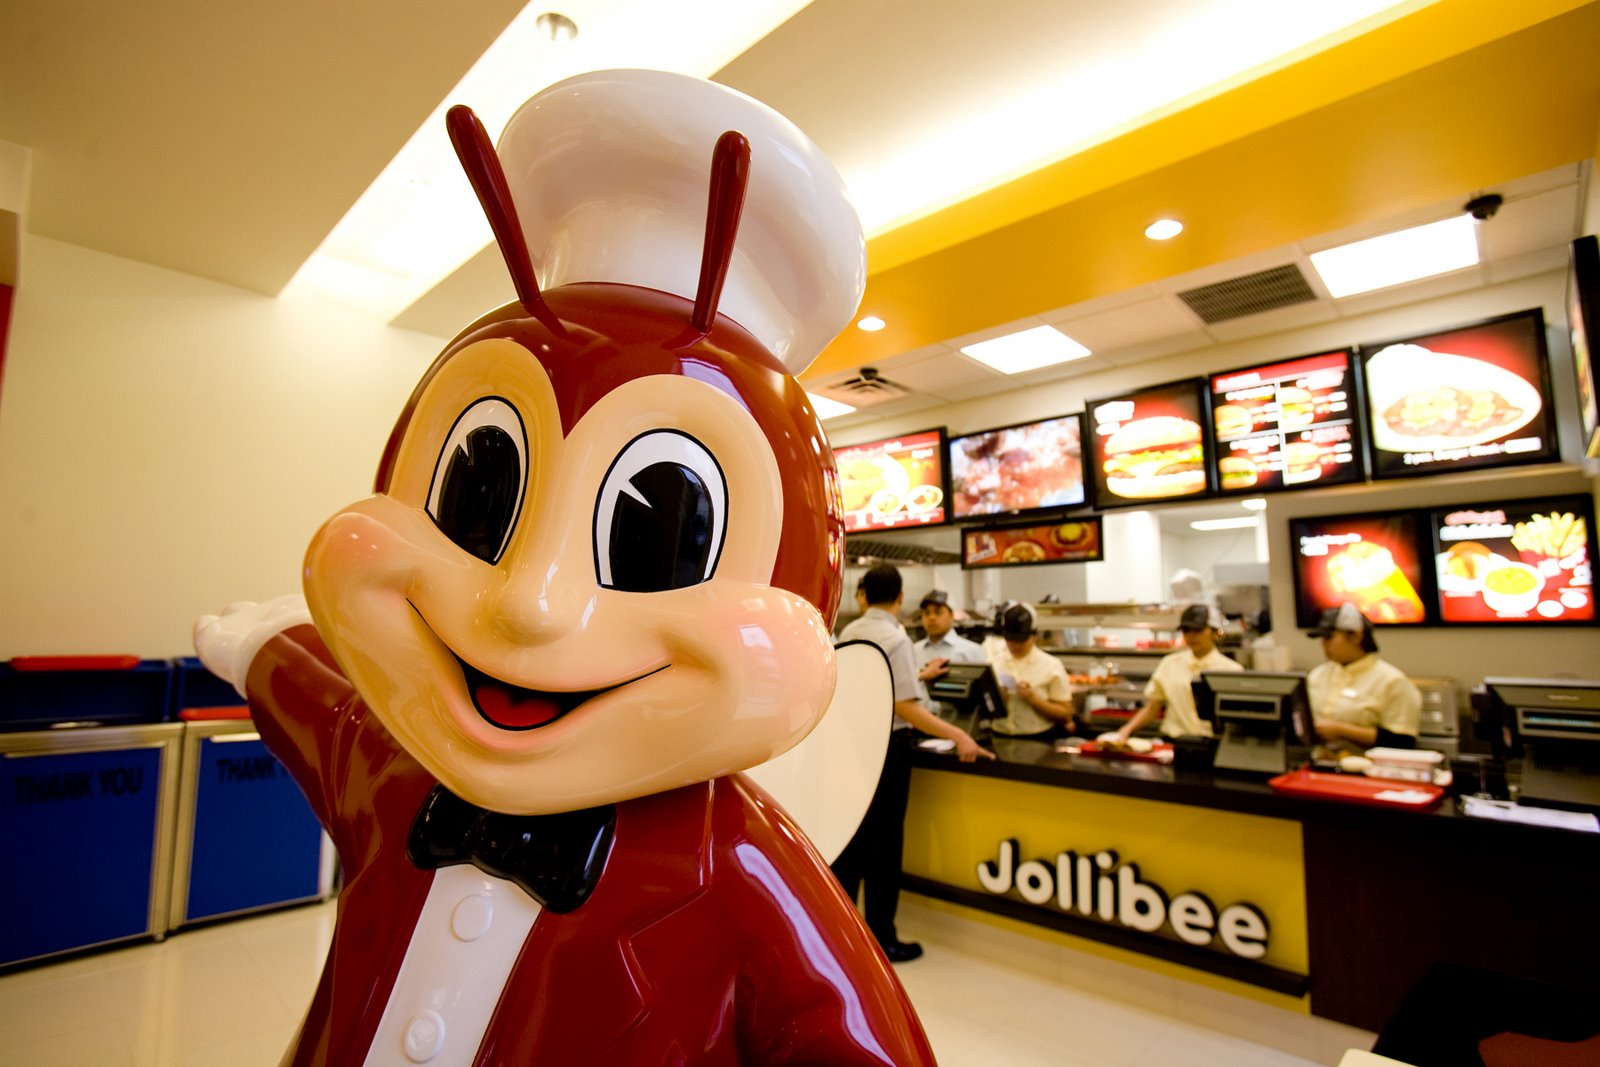 jollibee 10 policies for emploees 10 securities registered pursuant to sections 4 and 8 of the rsa  the board of  directors, management and employees of jollibee foods  implement the  policies it has laid down in the conduct of the business of the.